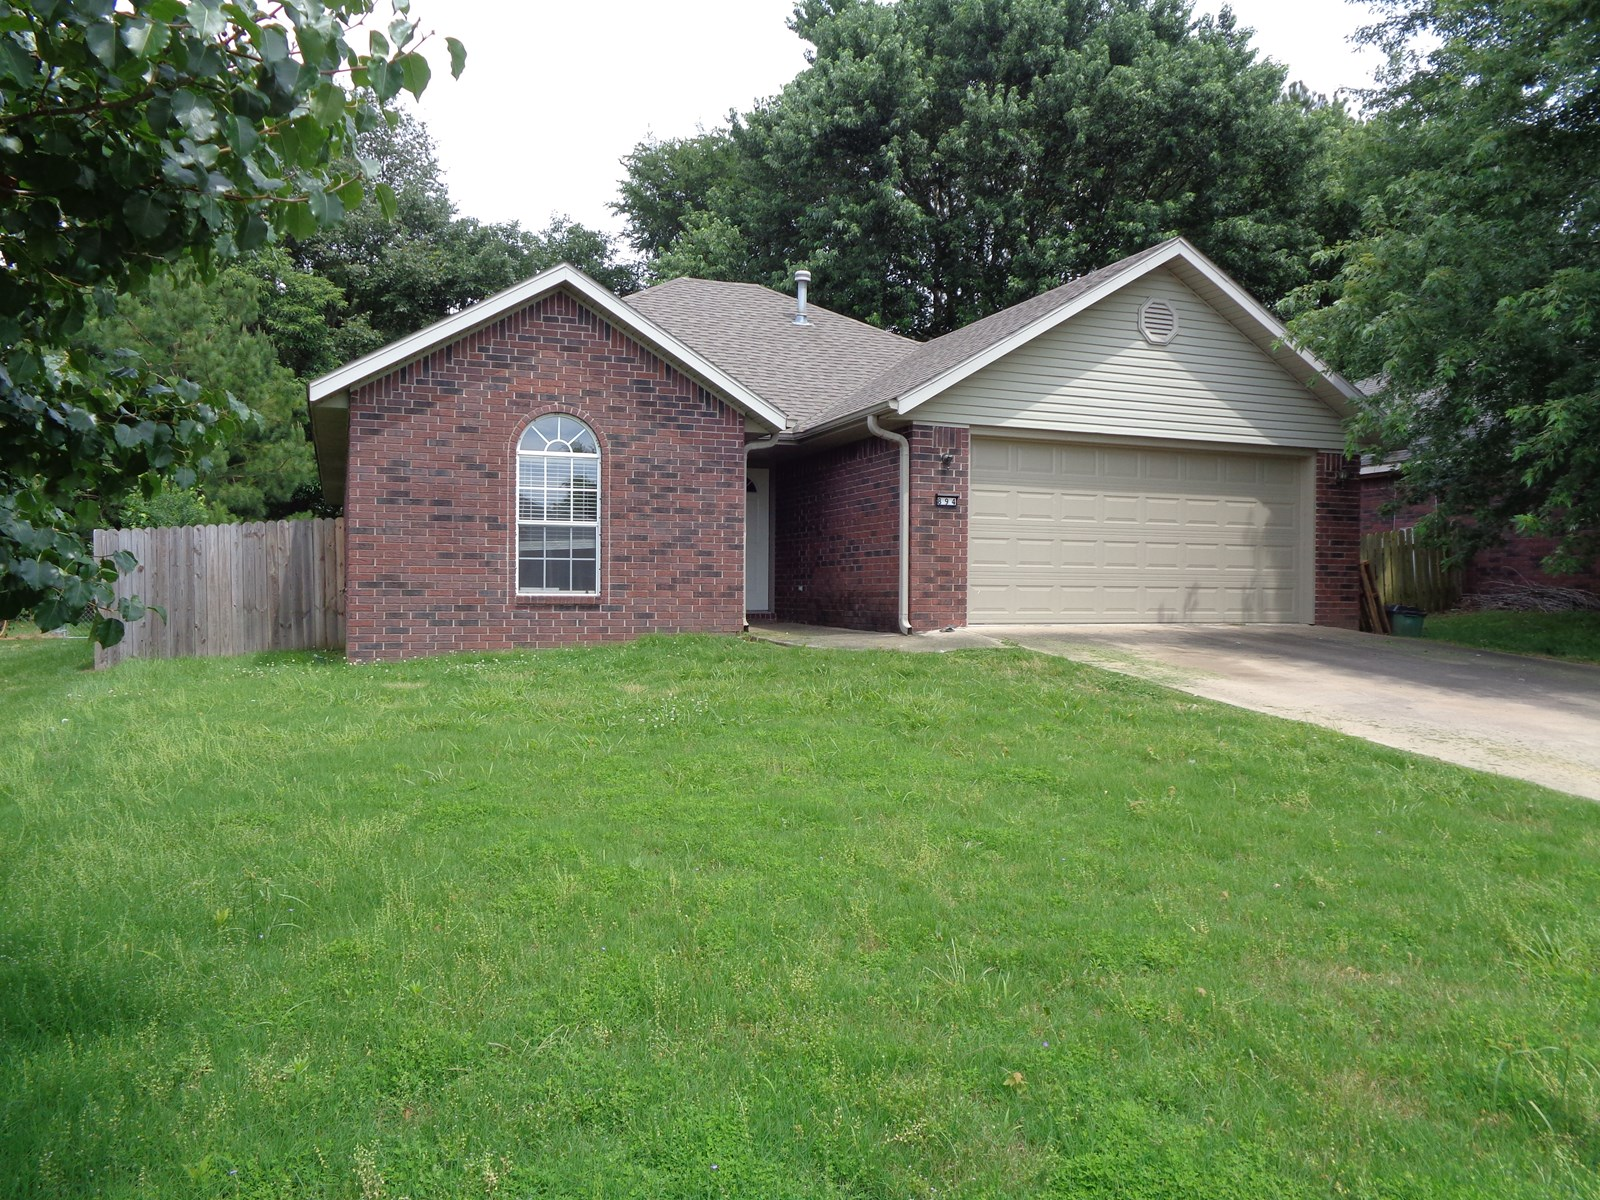 Fayetteville, Arkansas 3bedroom/2bath Home For Sale